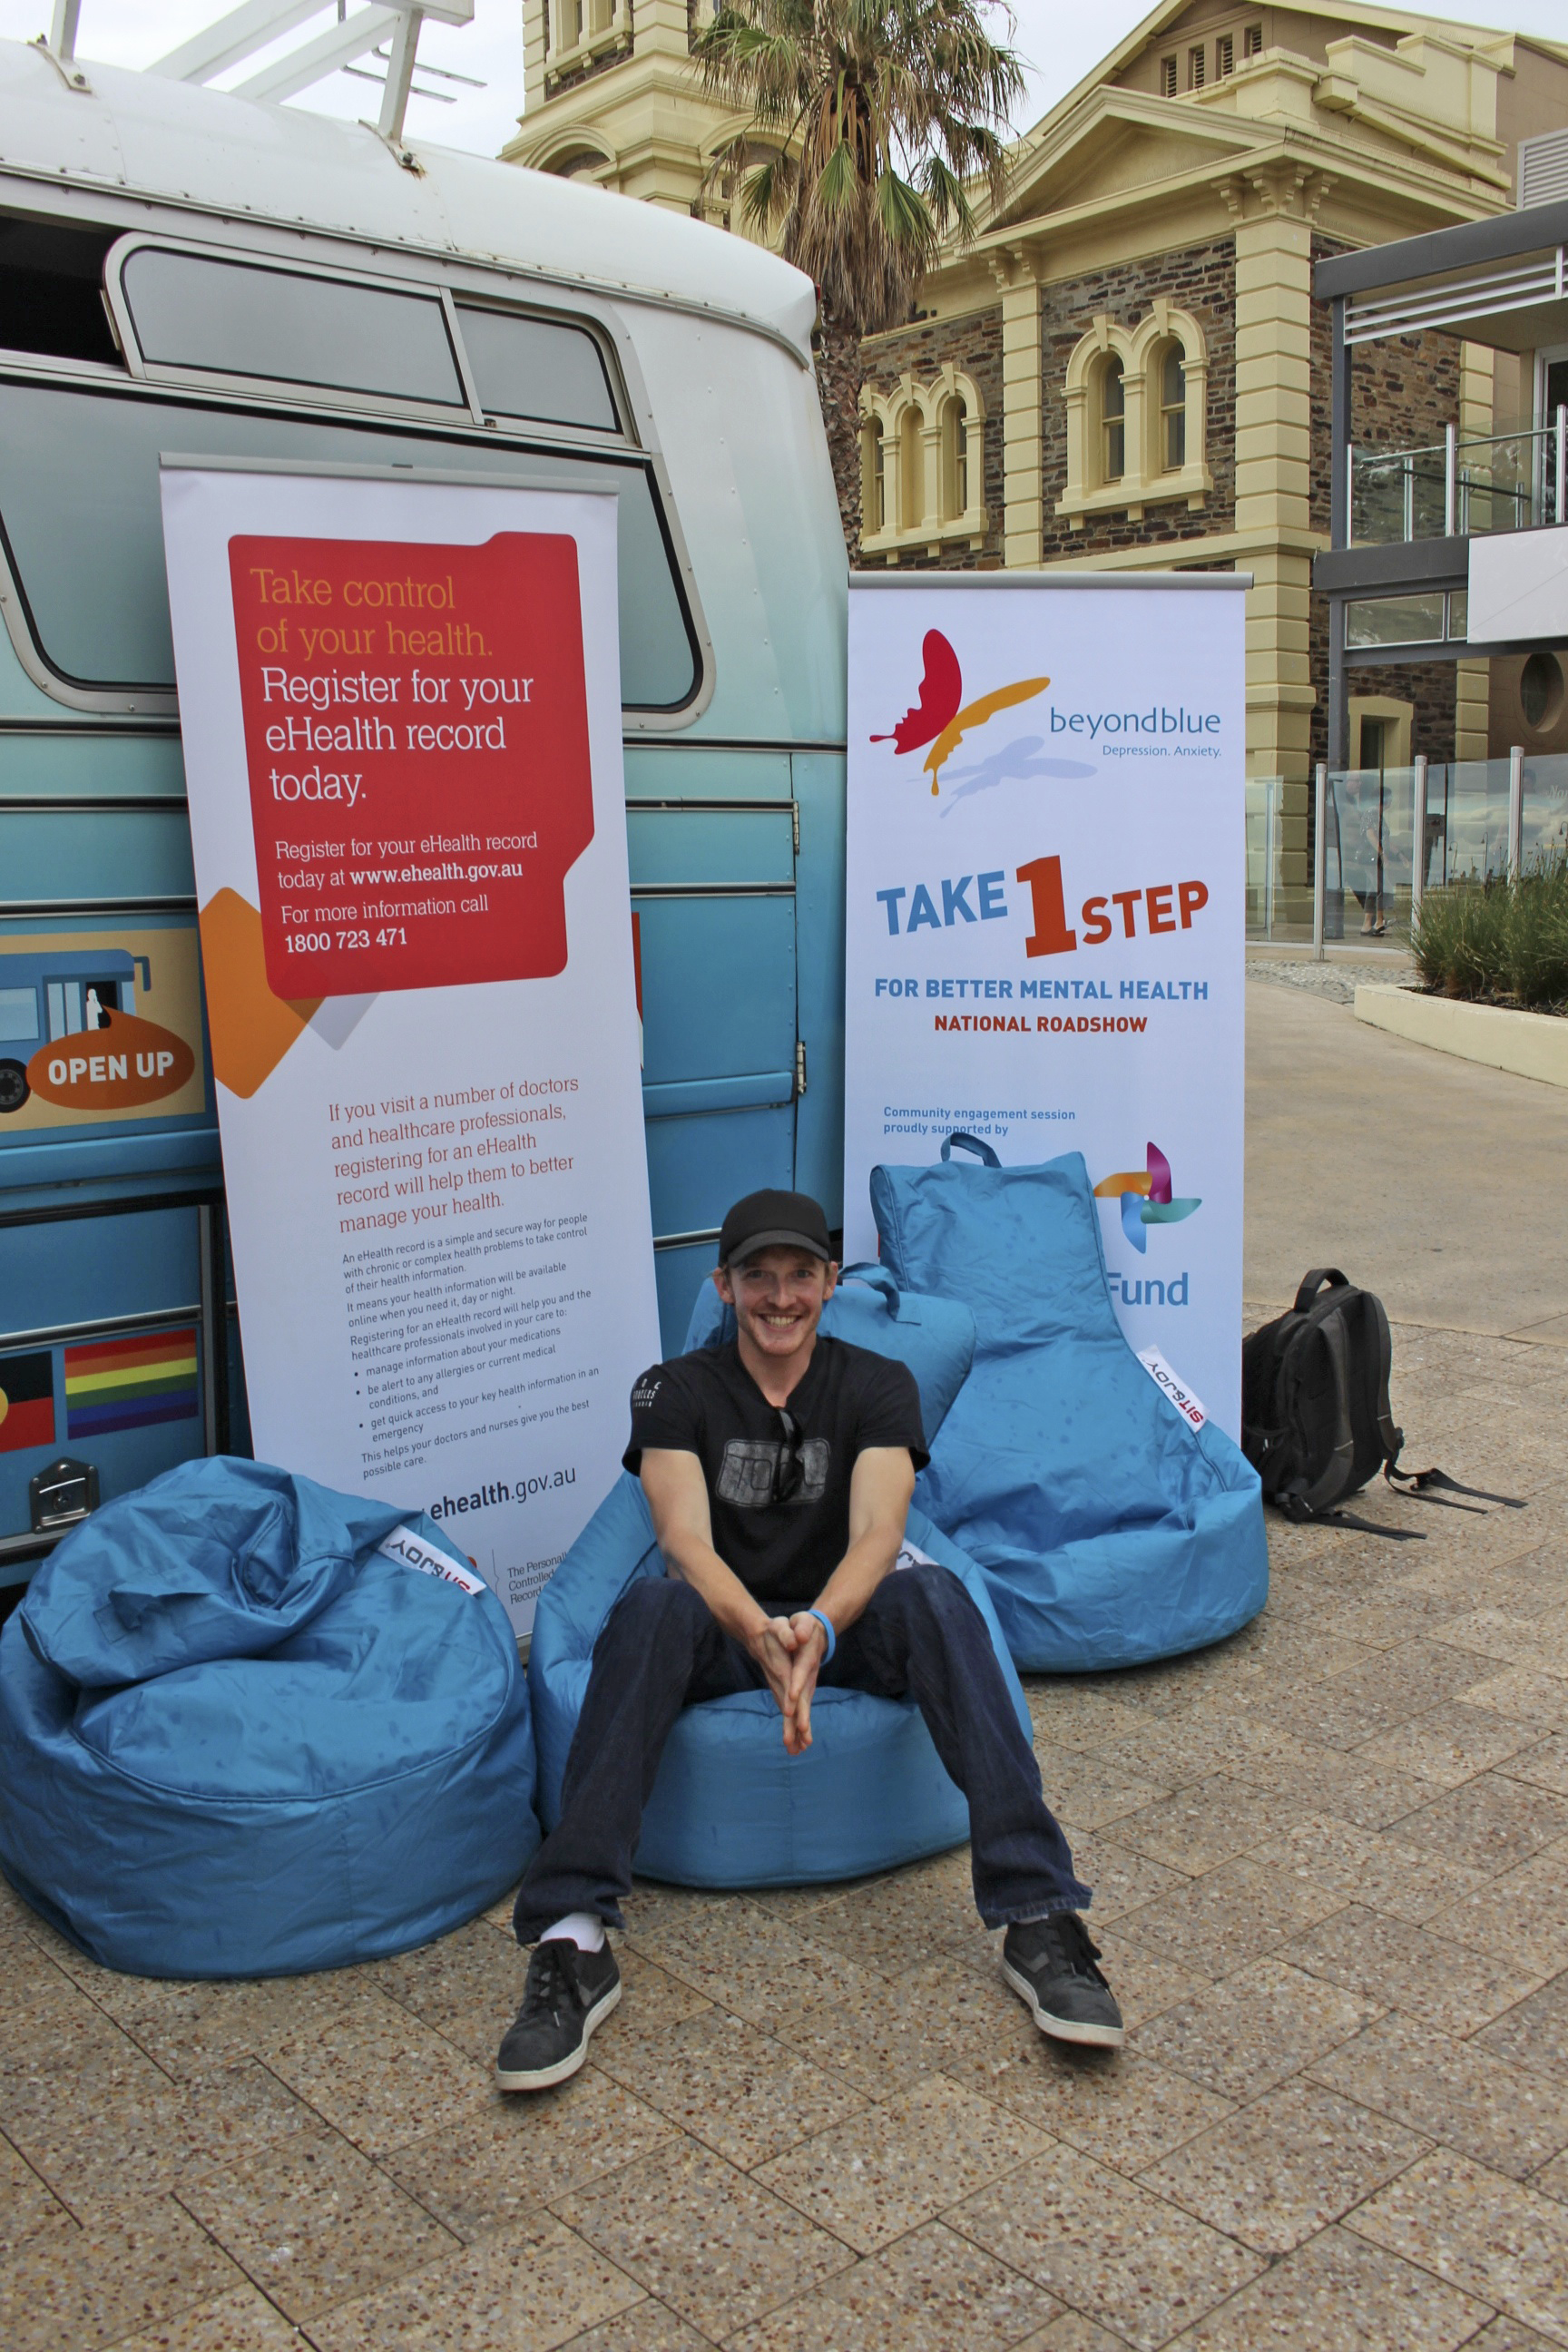 Rhys McGill - just returned from climbing Mount Kilimanjaro to raise money for Beyond Blue - dropped by the bus in Glenelg.